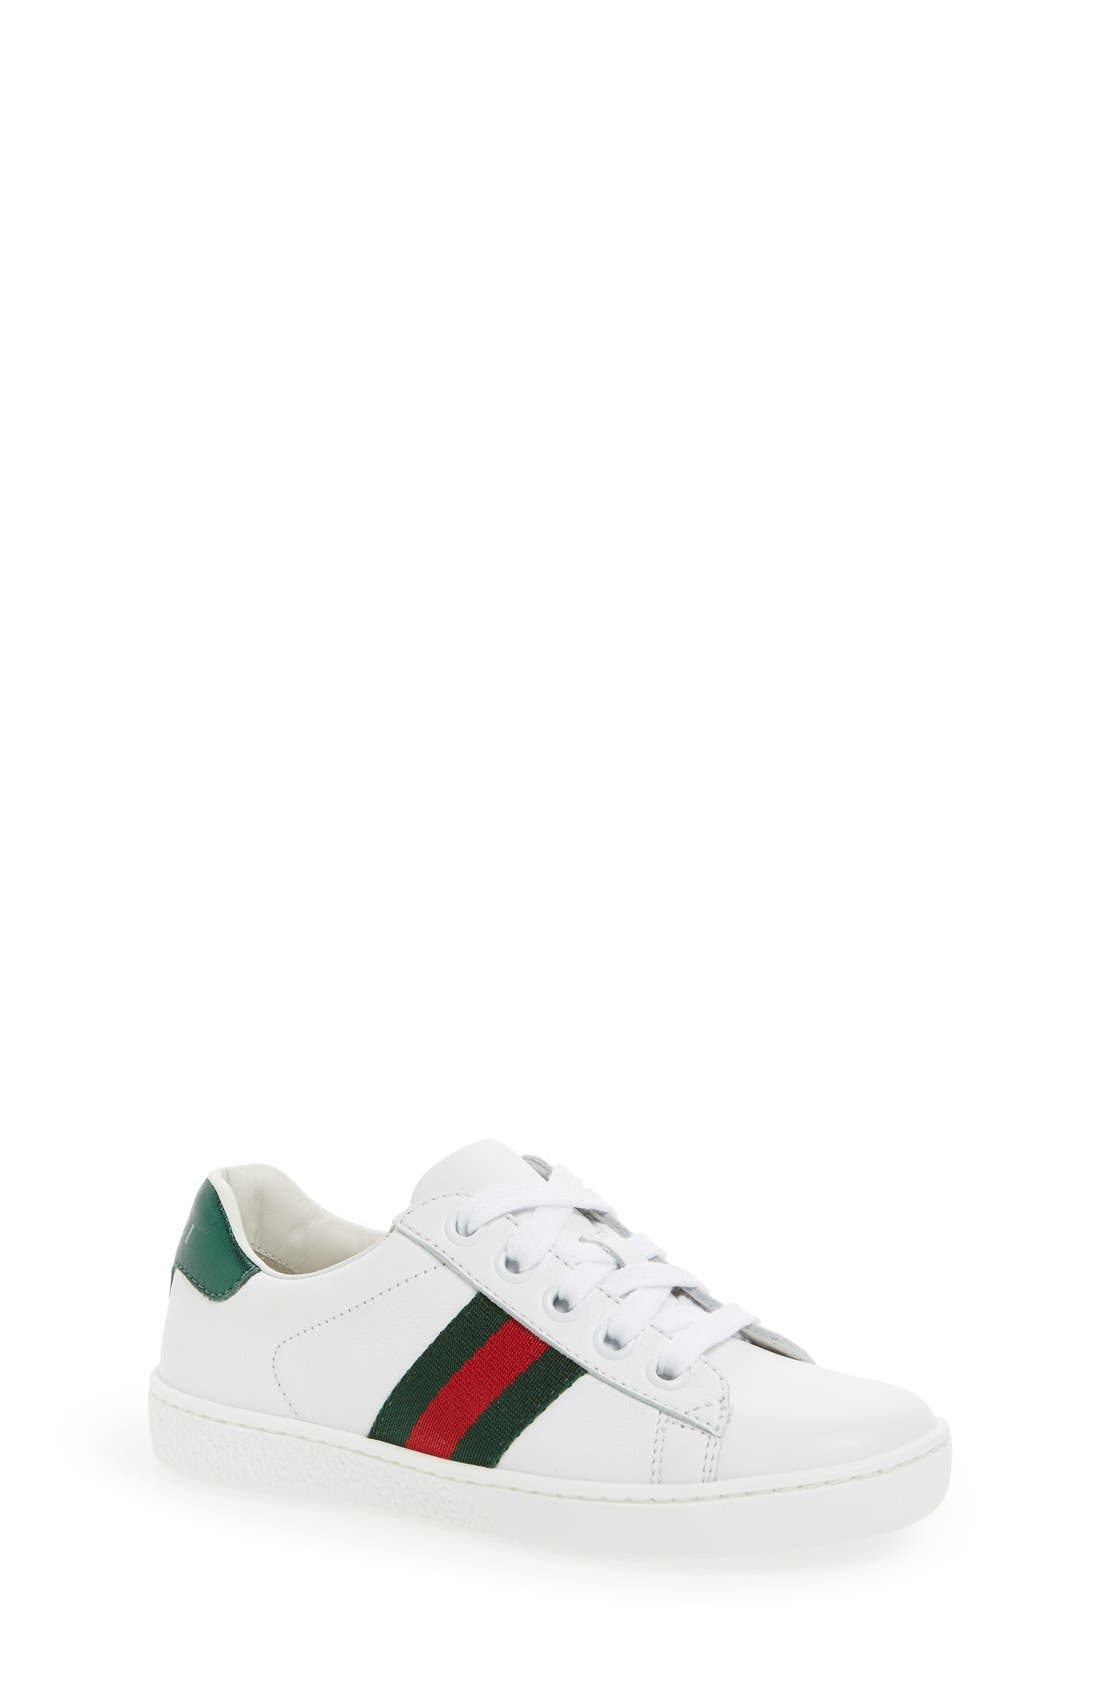 Alternate Image 1 Selected - Gucci 'Ace' Sneaker (Walker, Toddler & Little Kid)